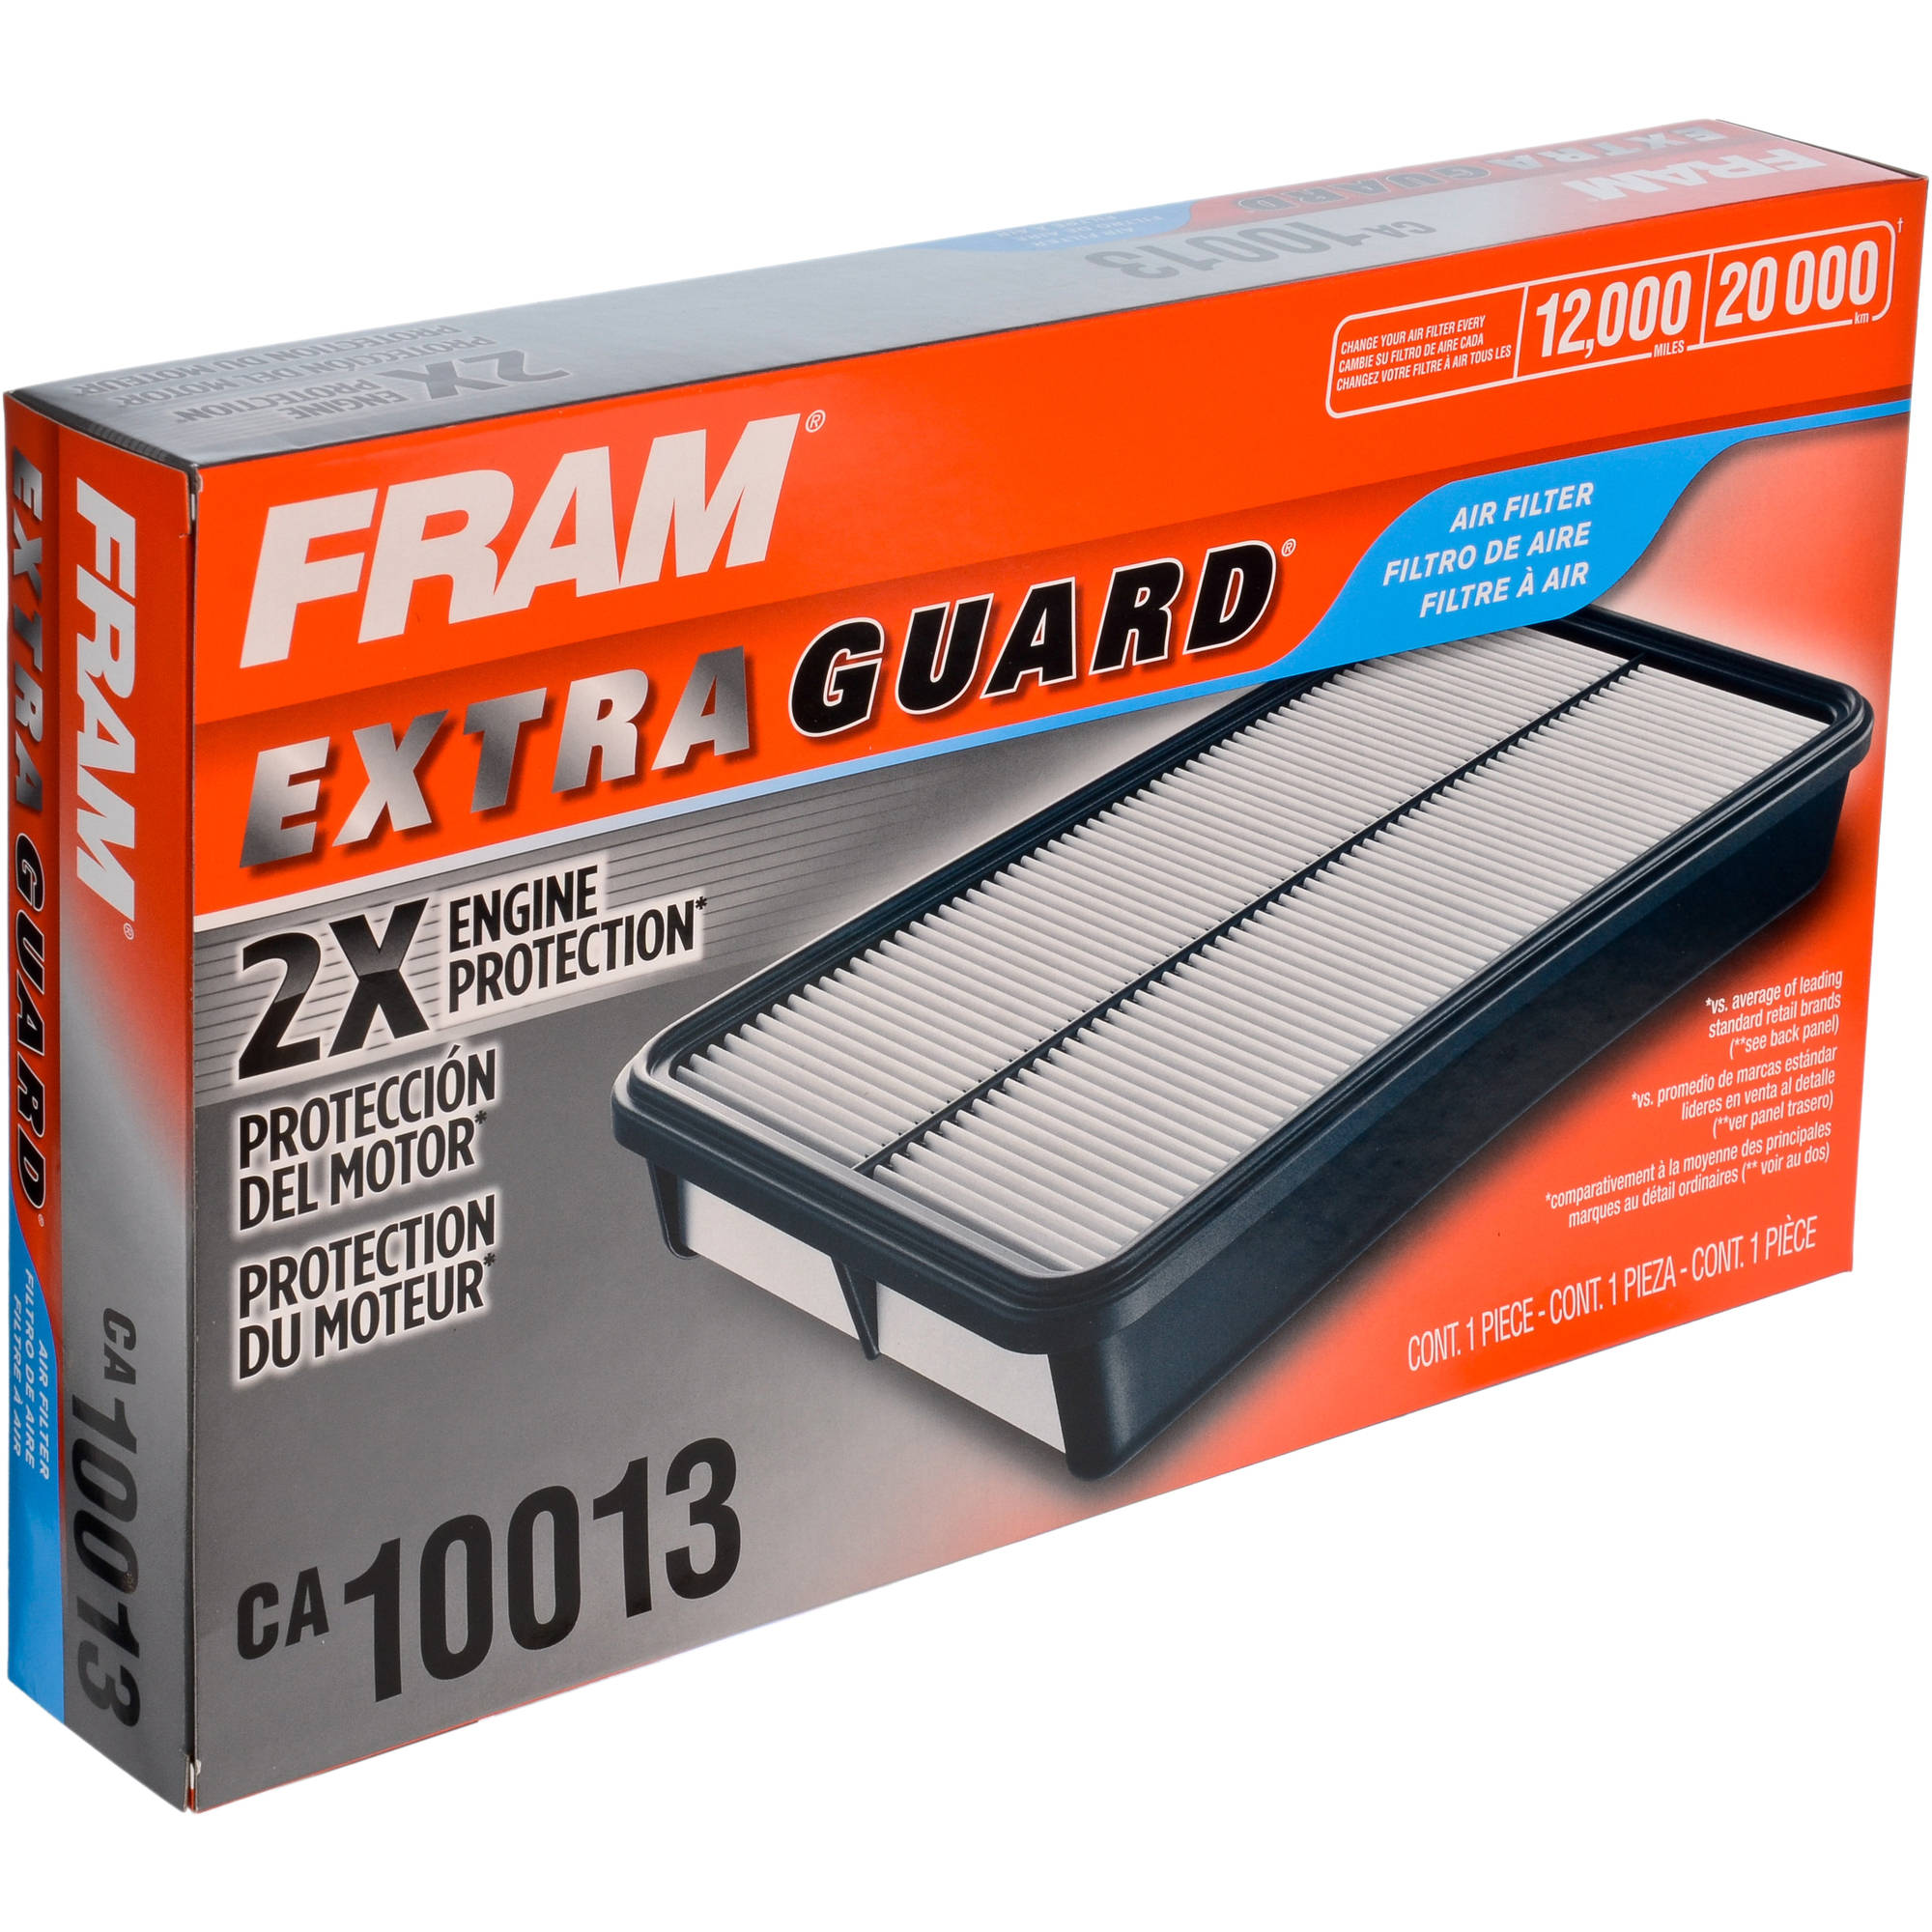 FRAM Extra Guard Air Filter, CA10013